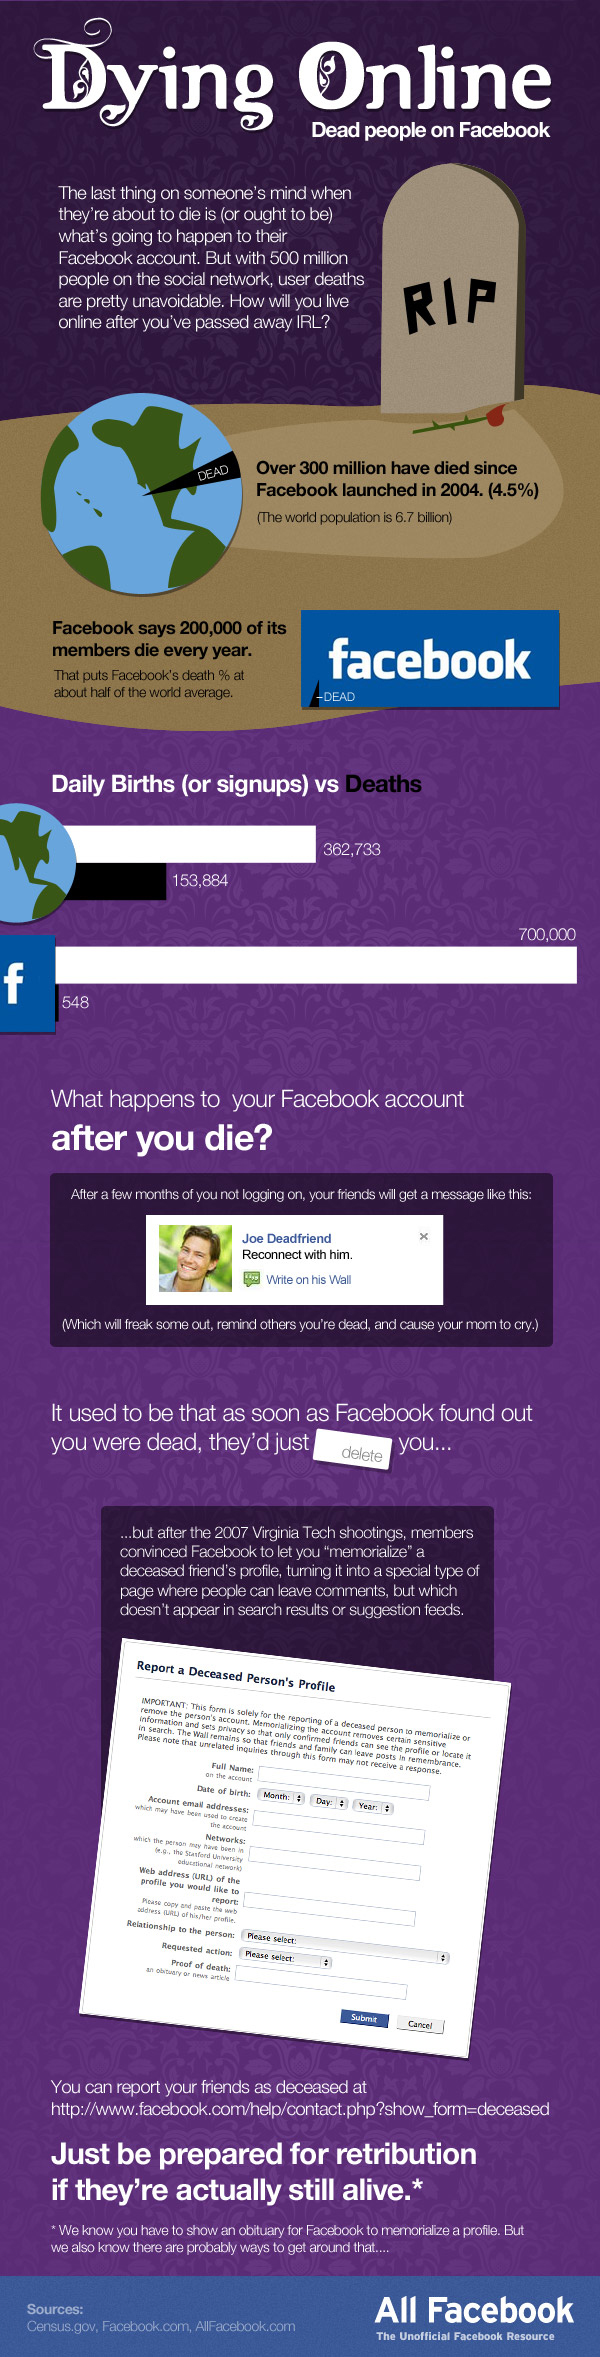 Death and Facebook